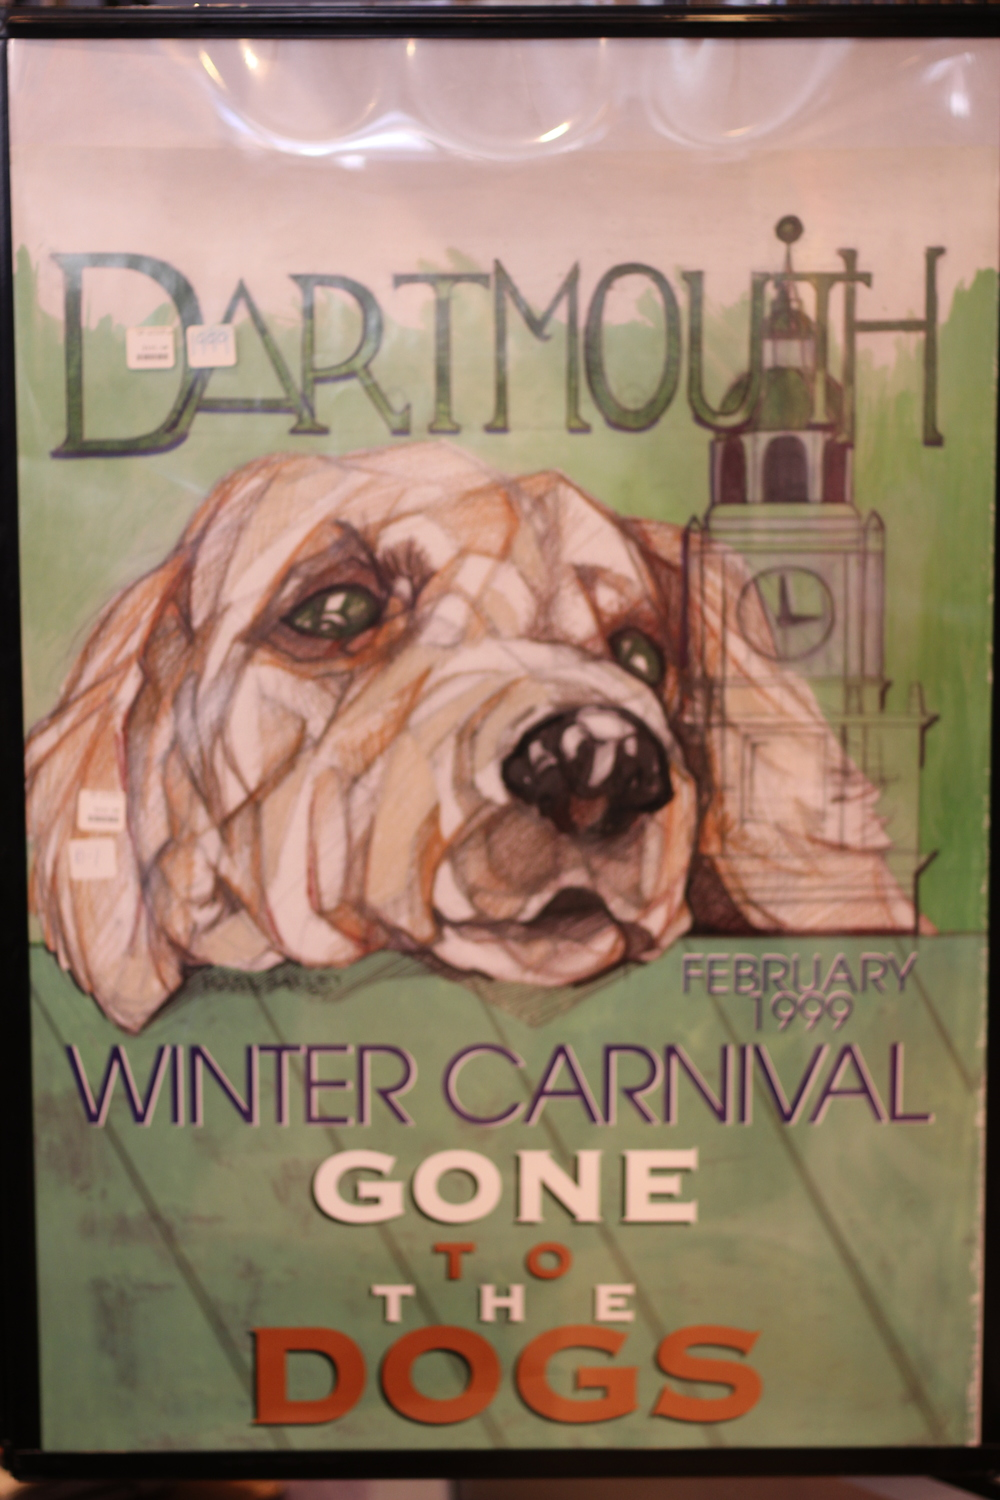 Dartmouth Winter Carnival 1999